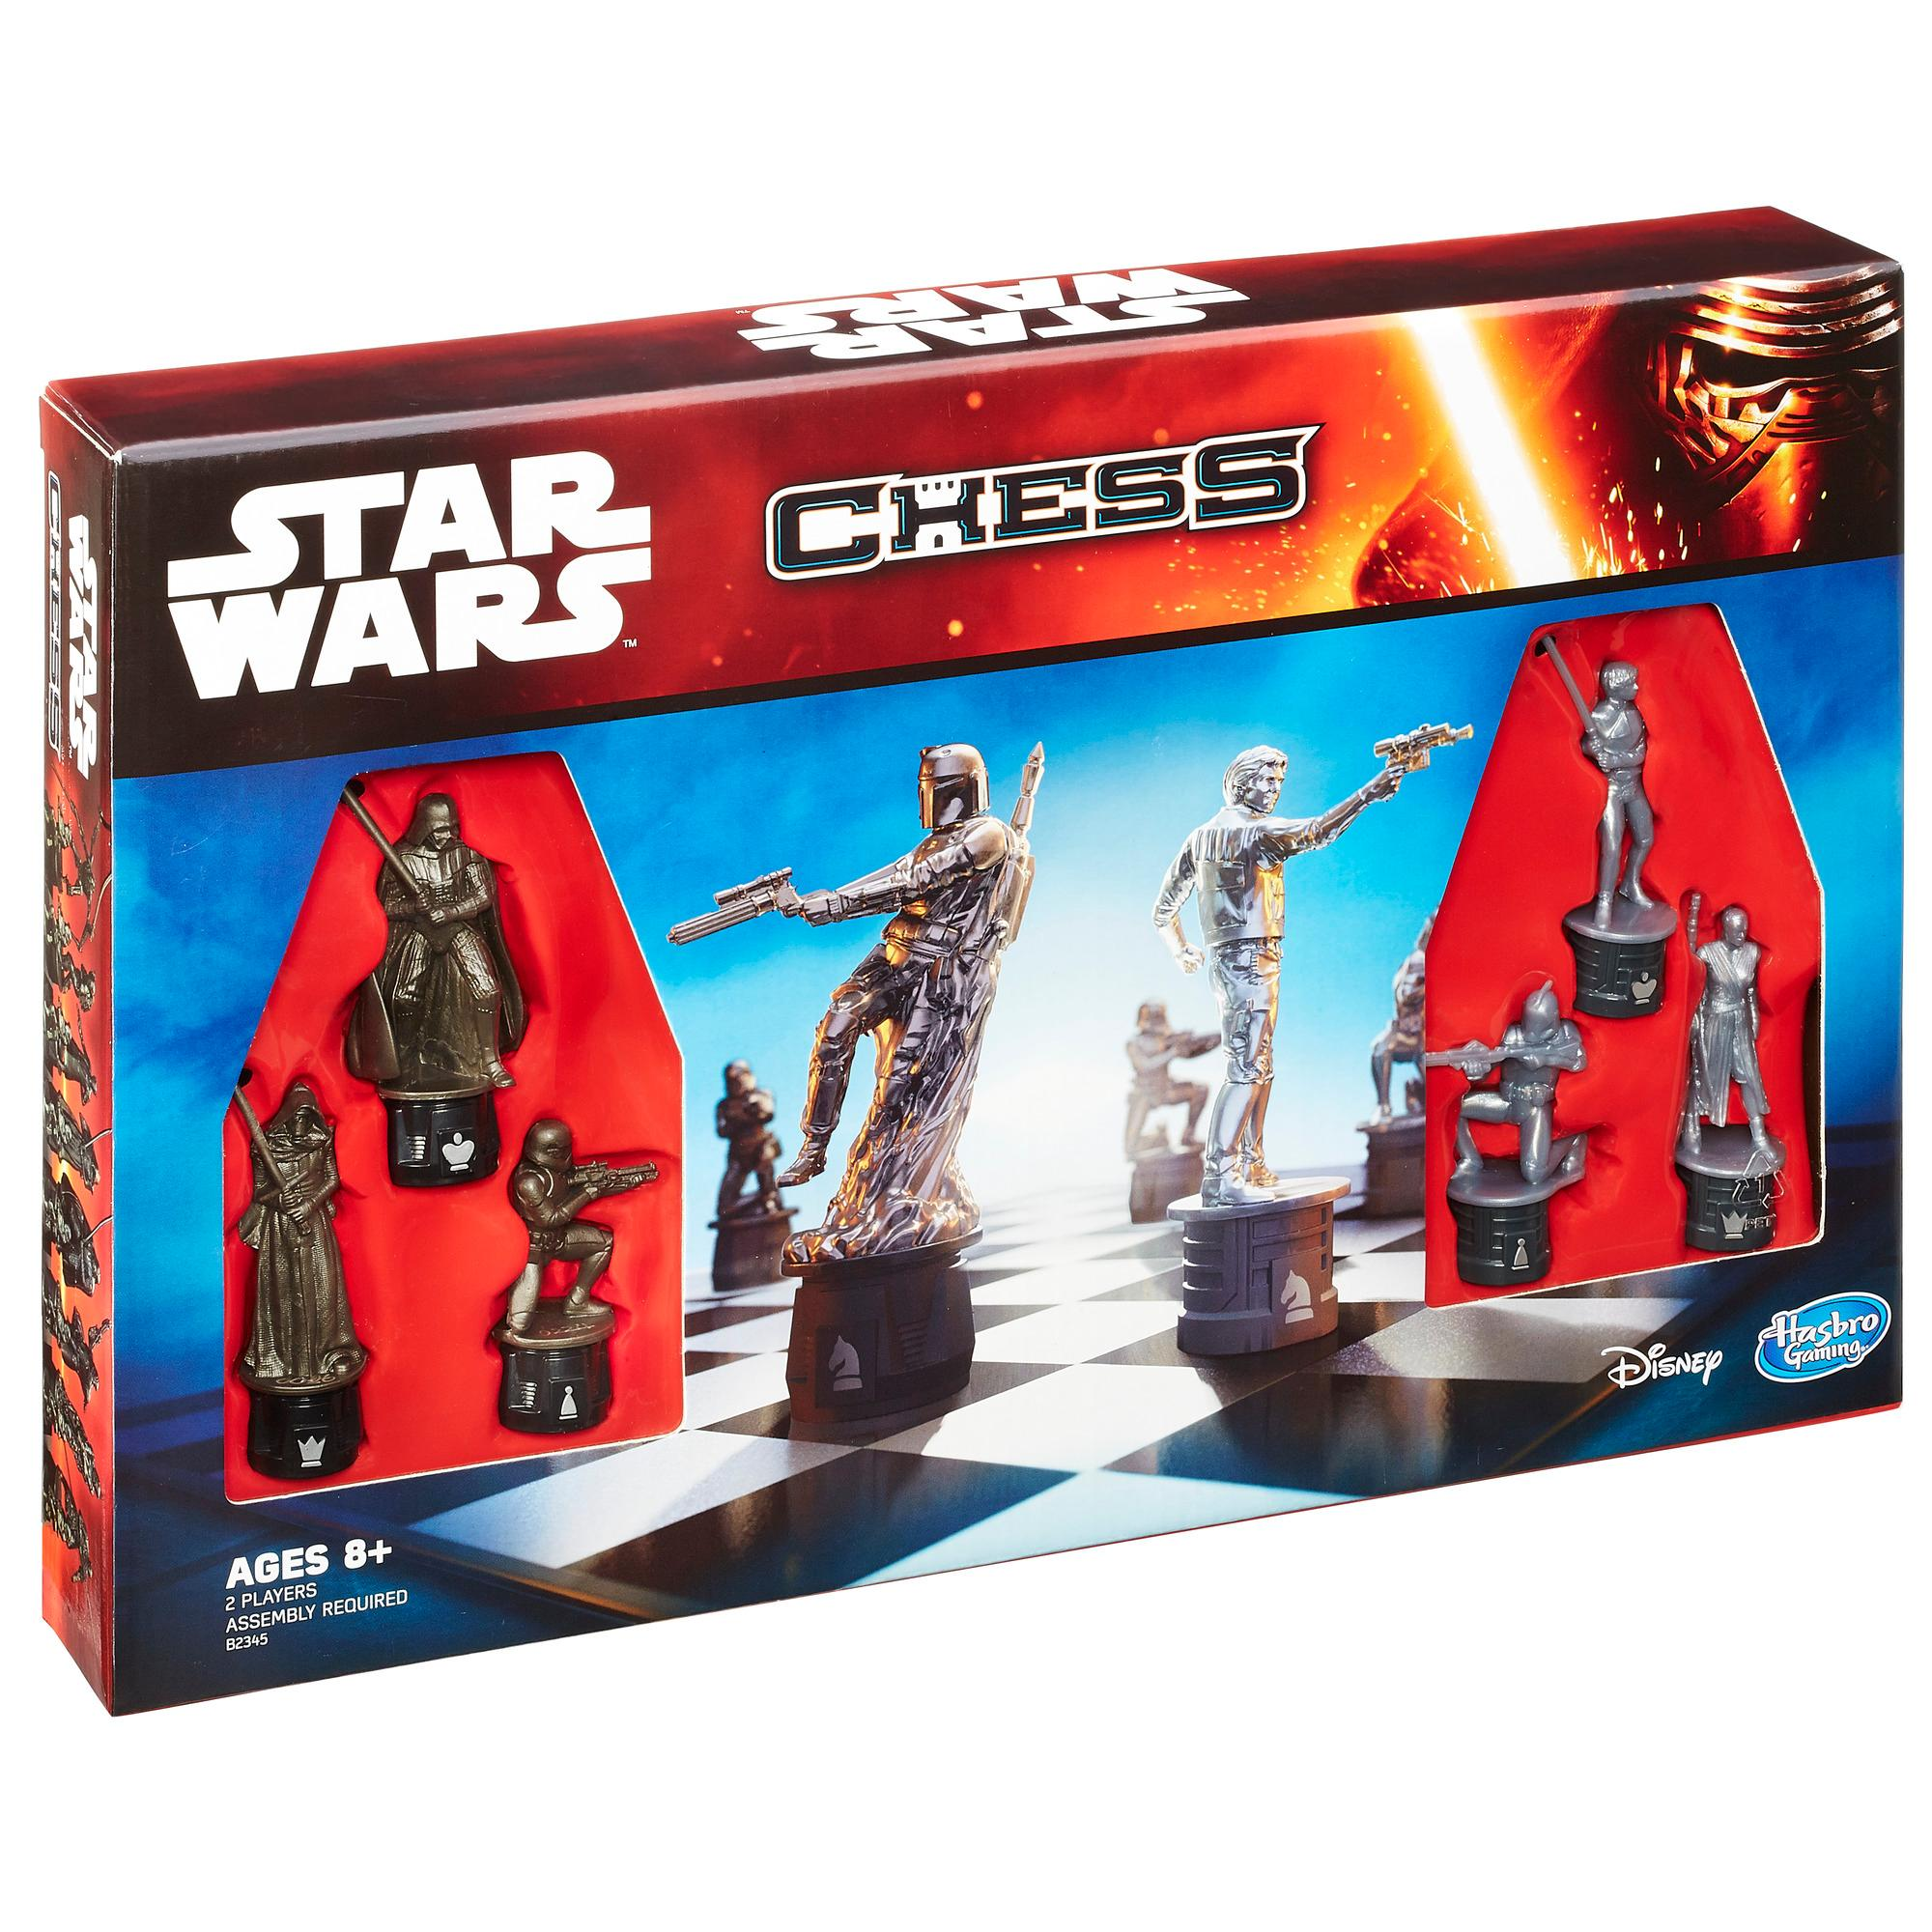 Star Wars Chess Game Toys Games